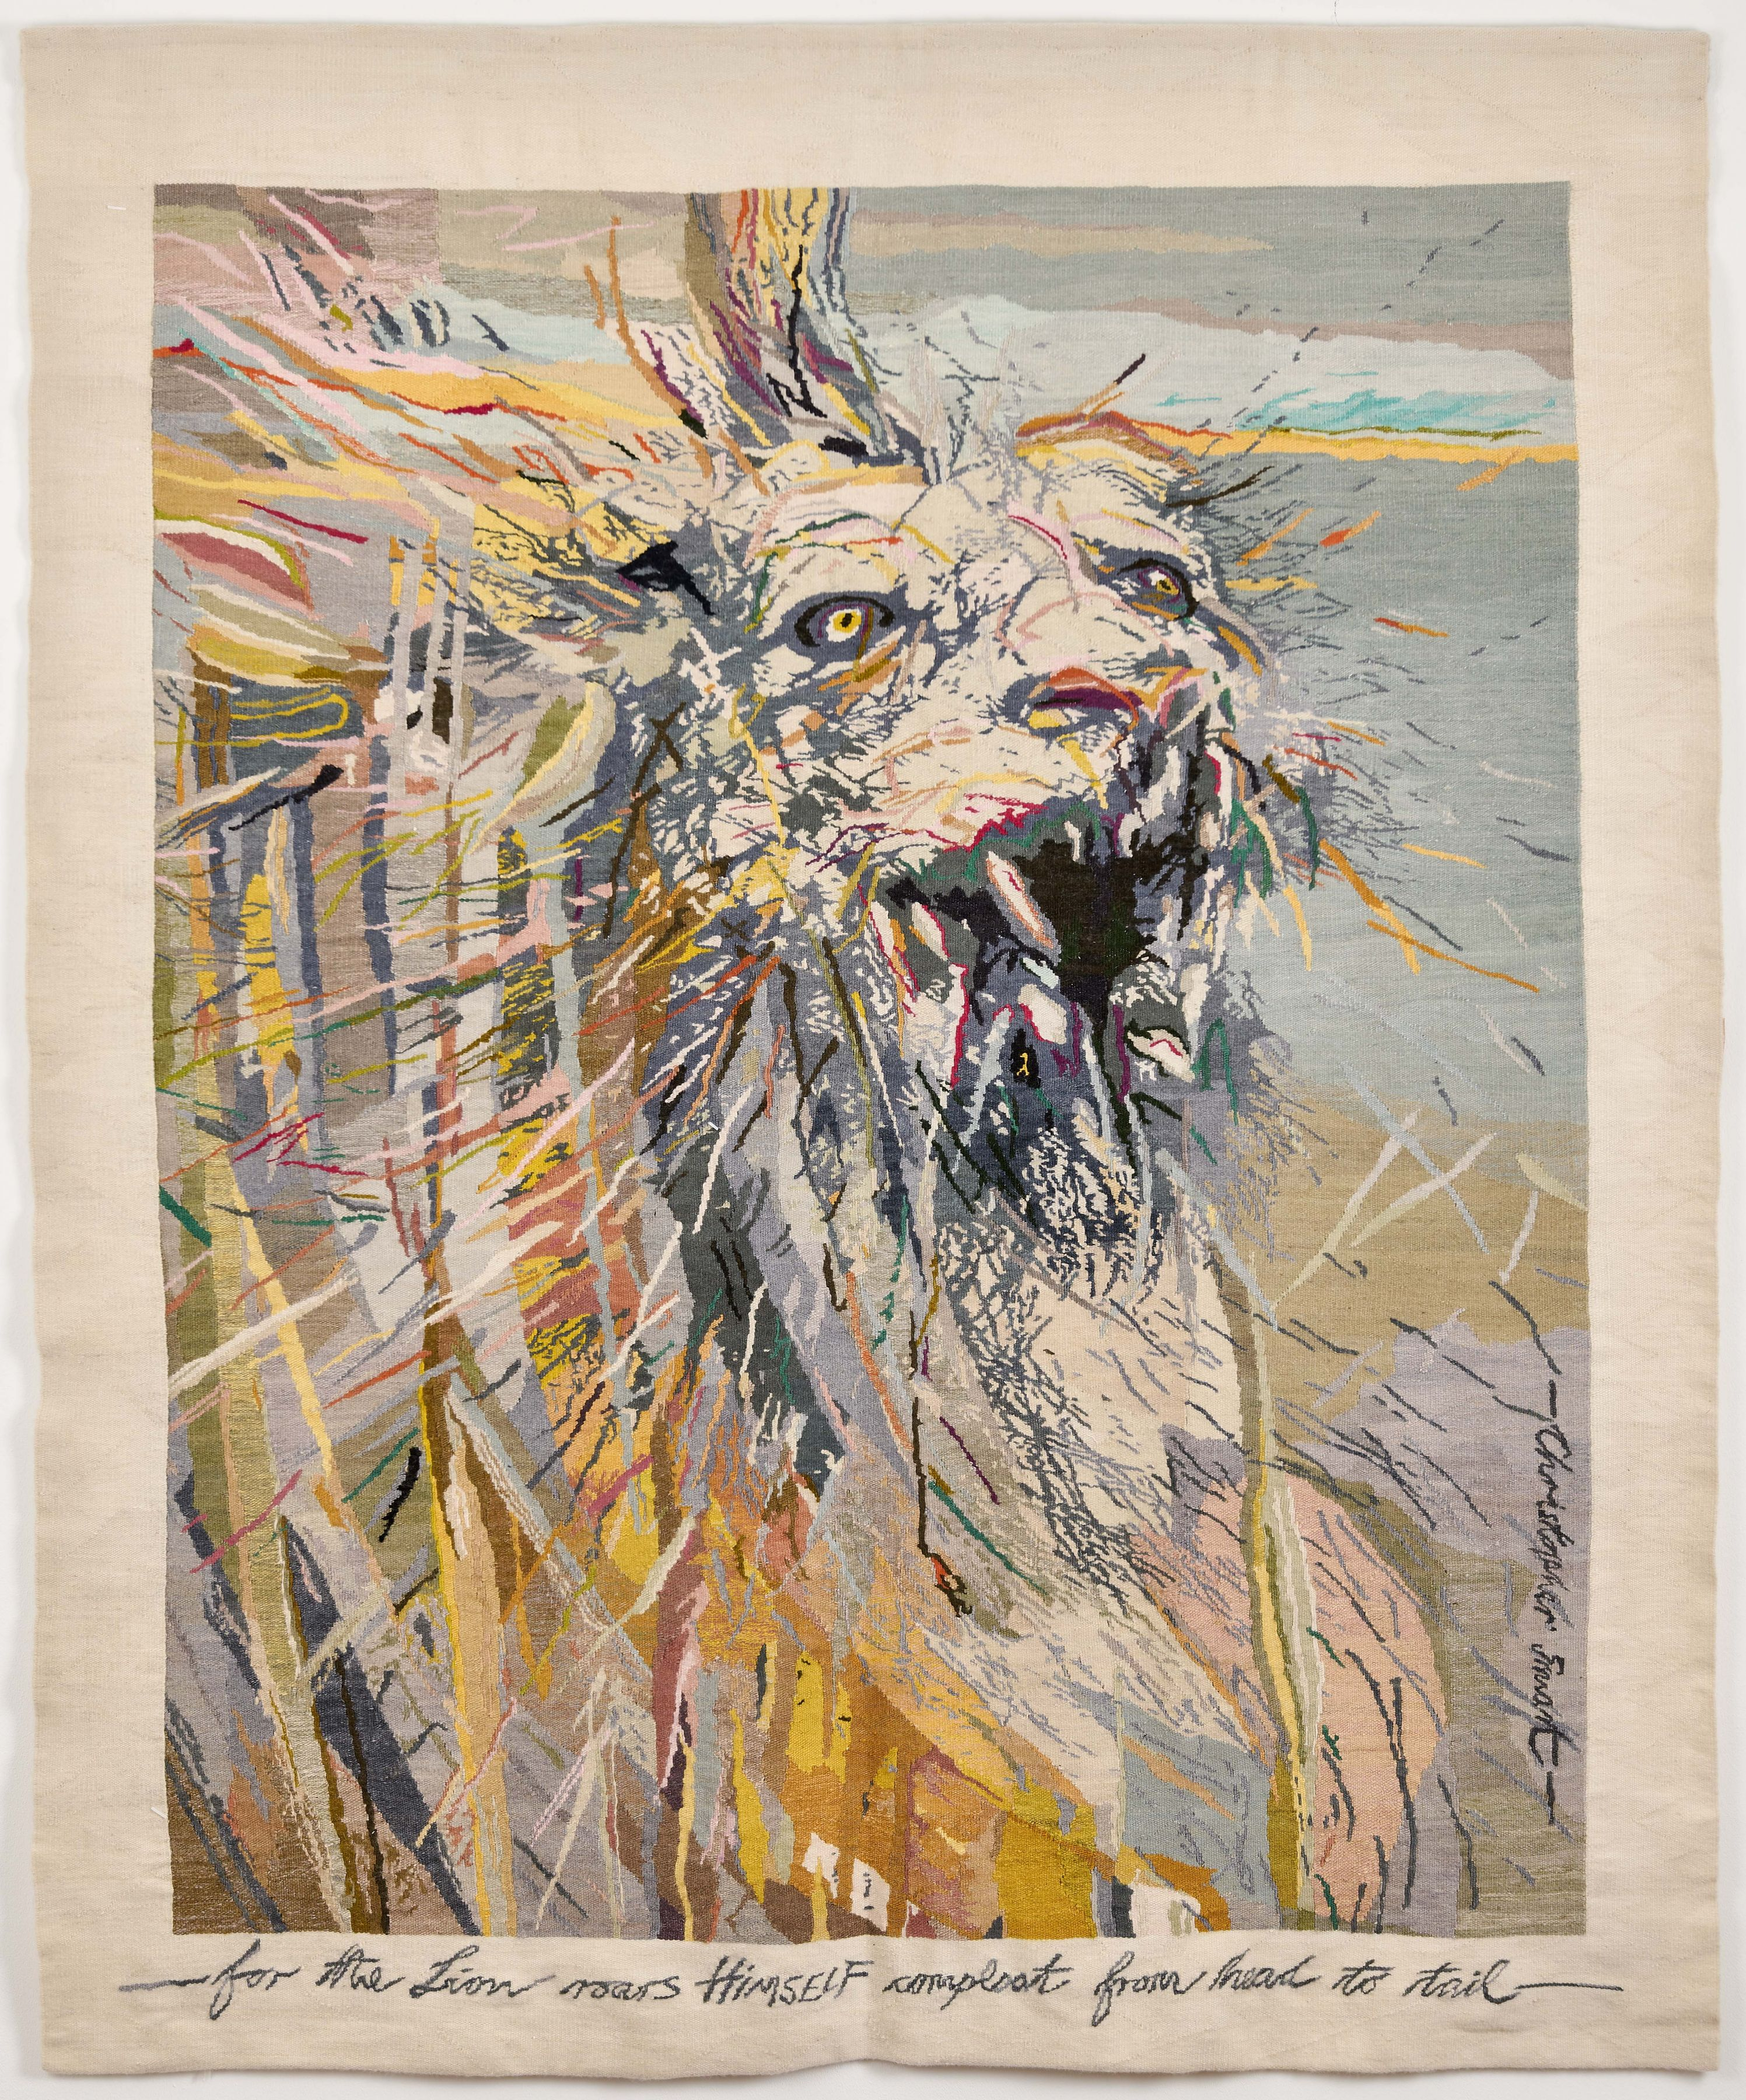 """Judith Mason & Marguerite Stephens - The Lion """"Roars himself Compleat"""""""